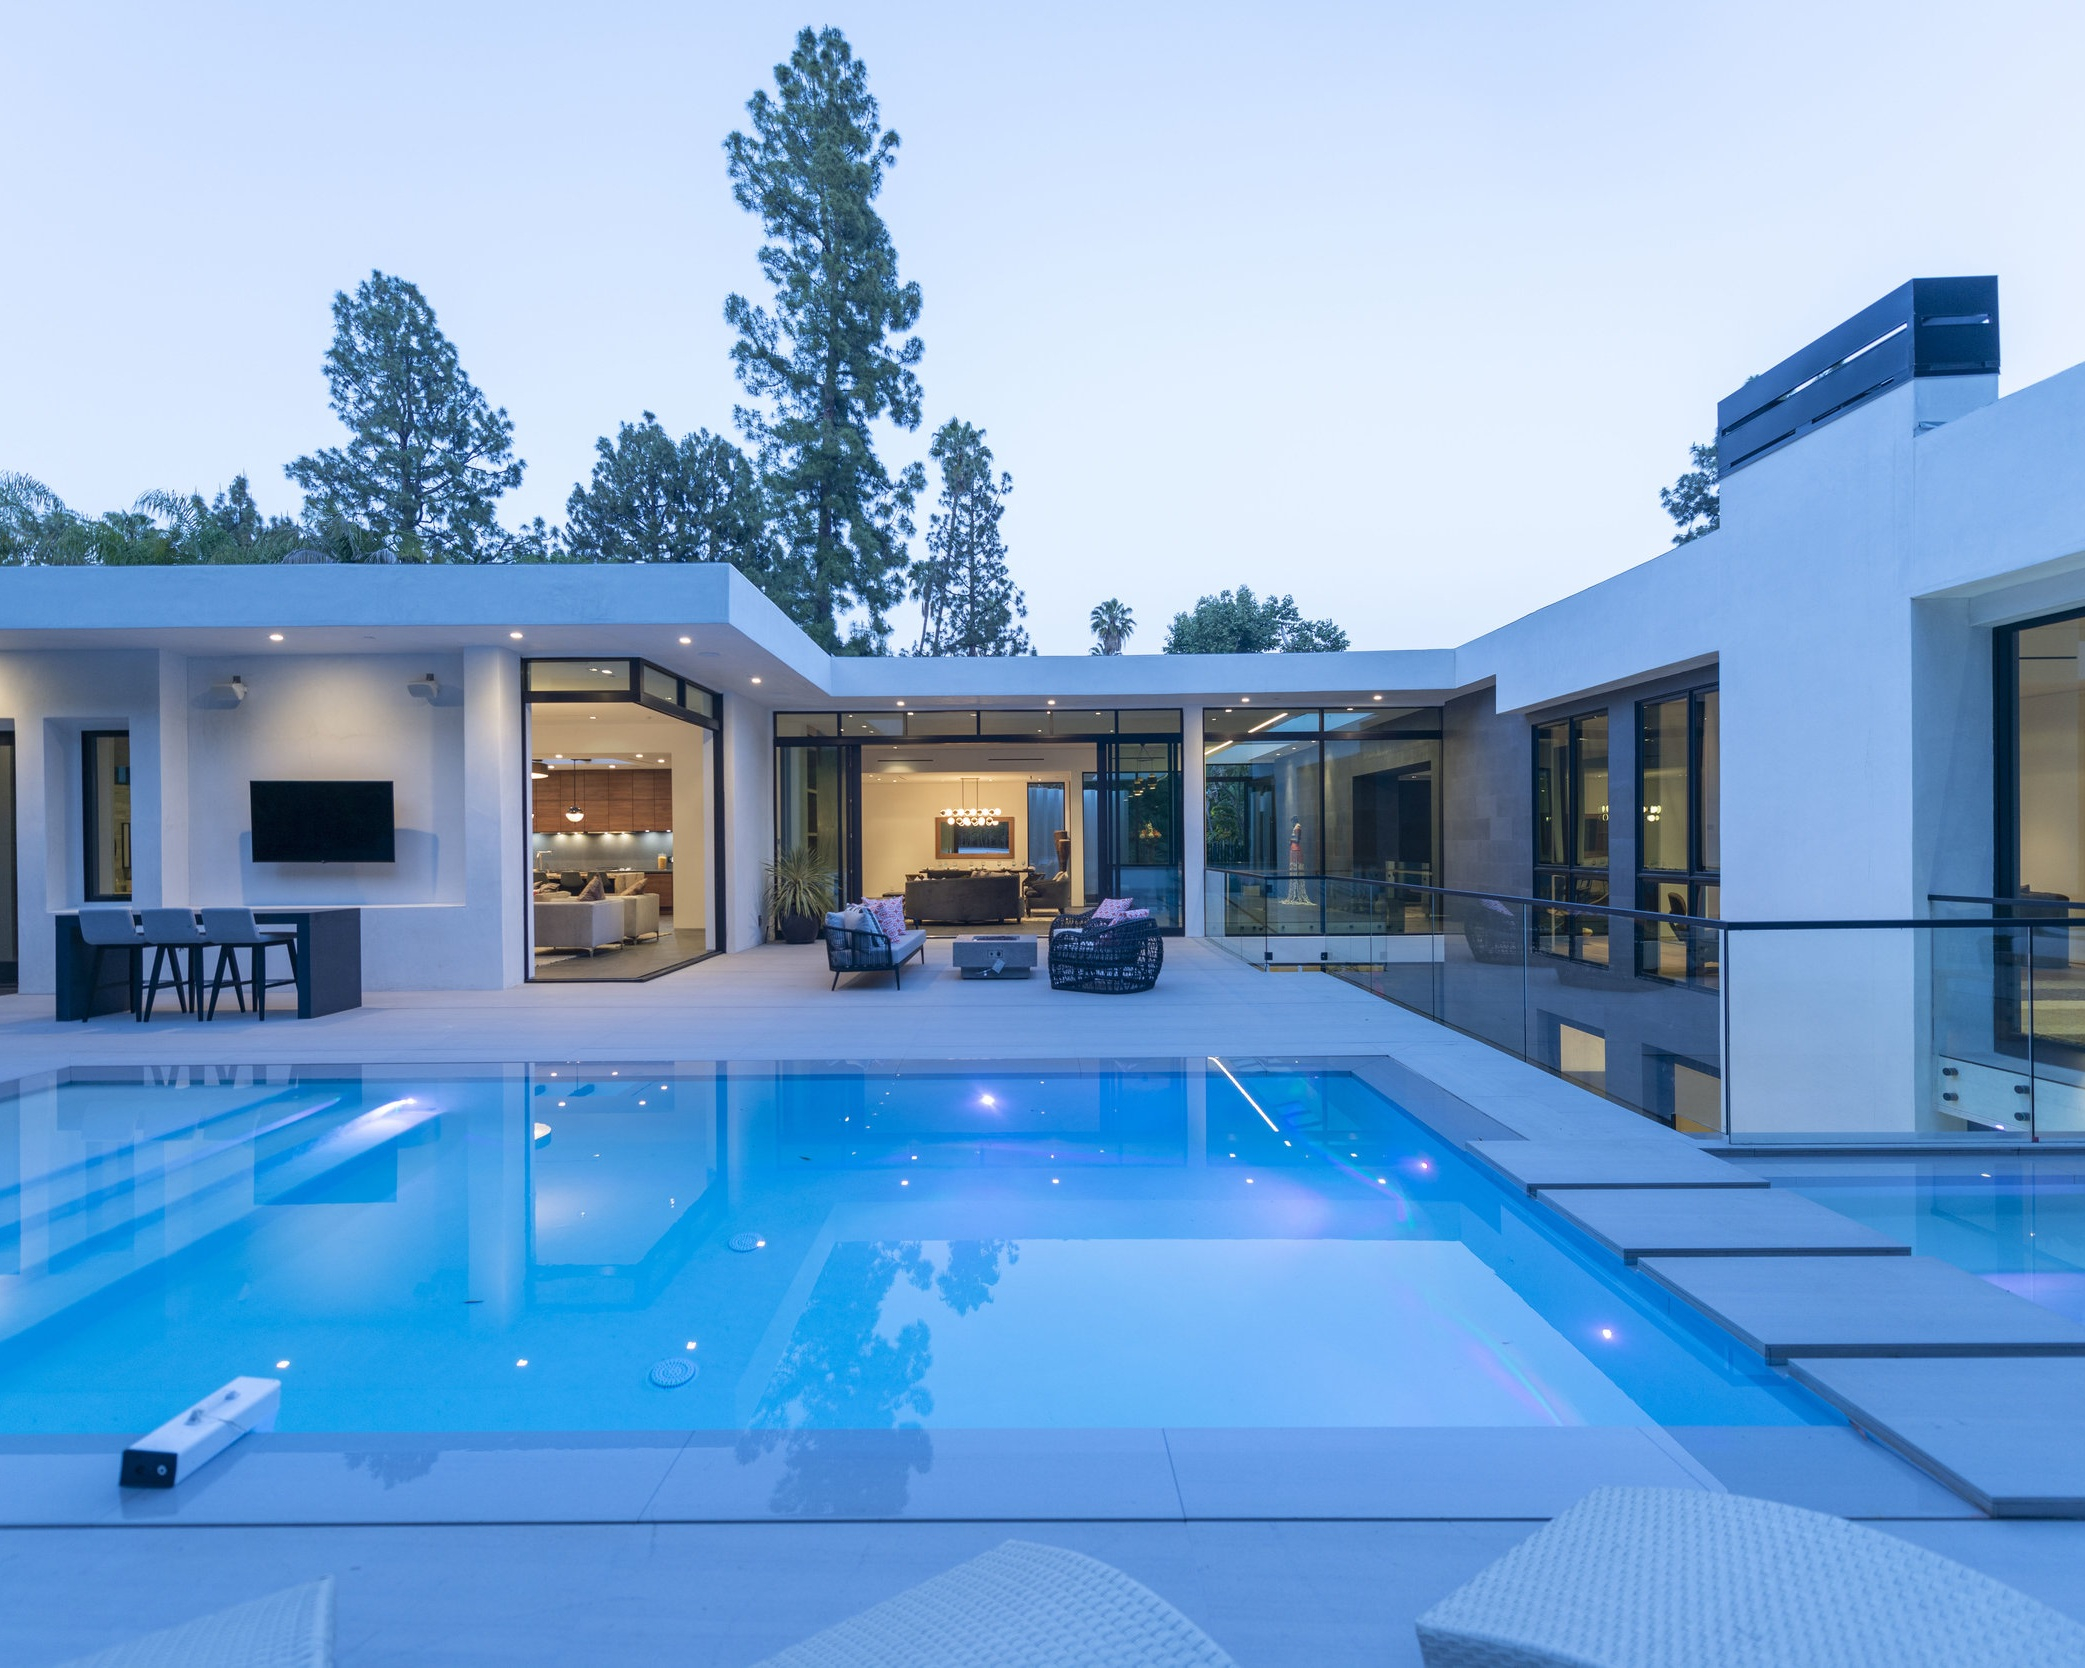 pool_and_spa_Beverly_hills_estate_architecture.jpg